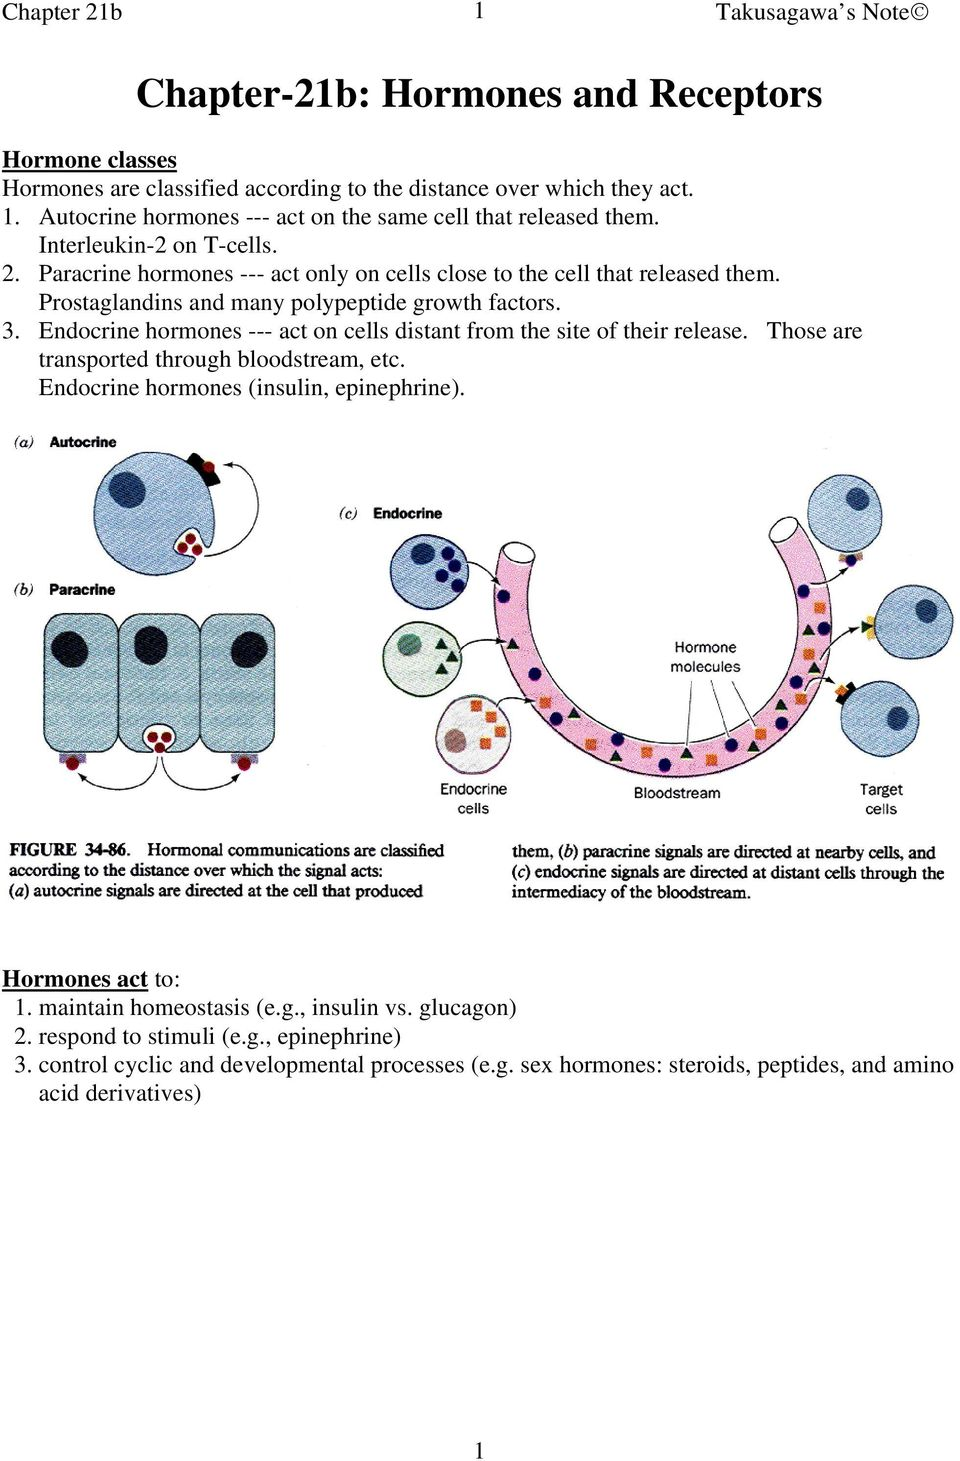 Prostaglandins and many polypeptide growth factors. 3. Endocrine hormones --- act on cells distant from the site of their release. Those are transported through bloodstream, etc.